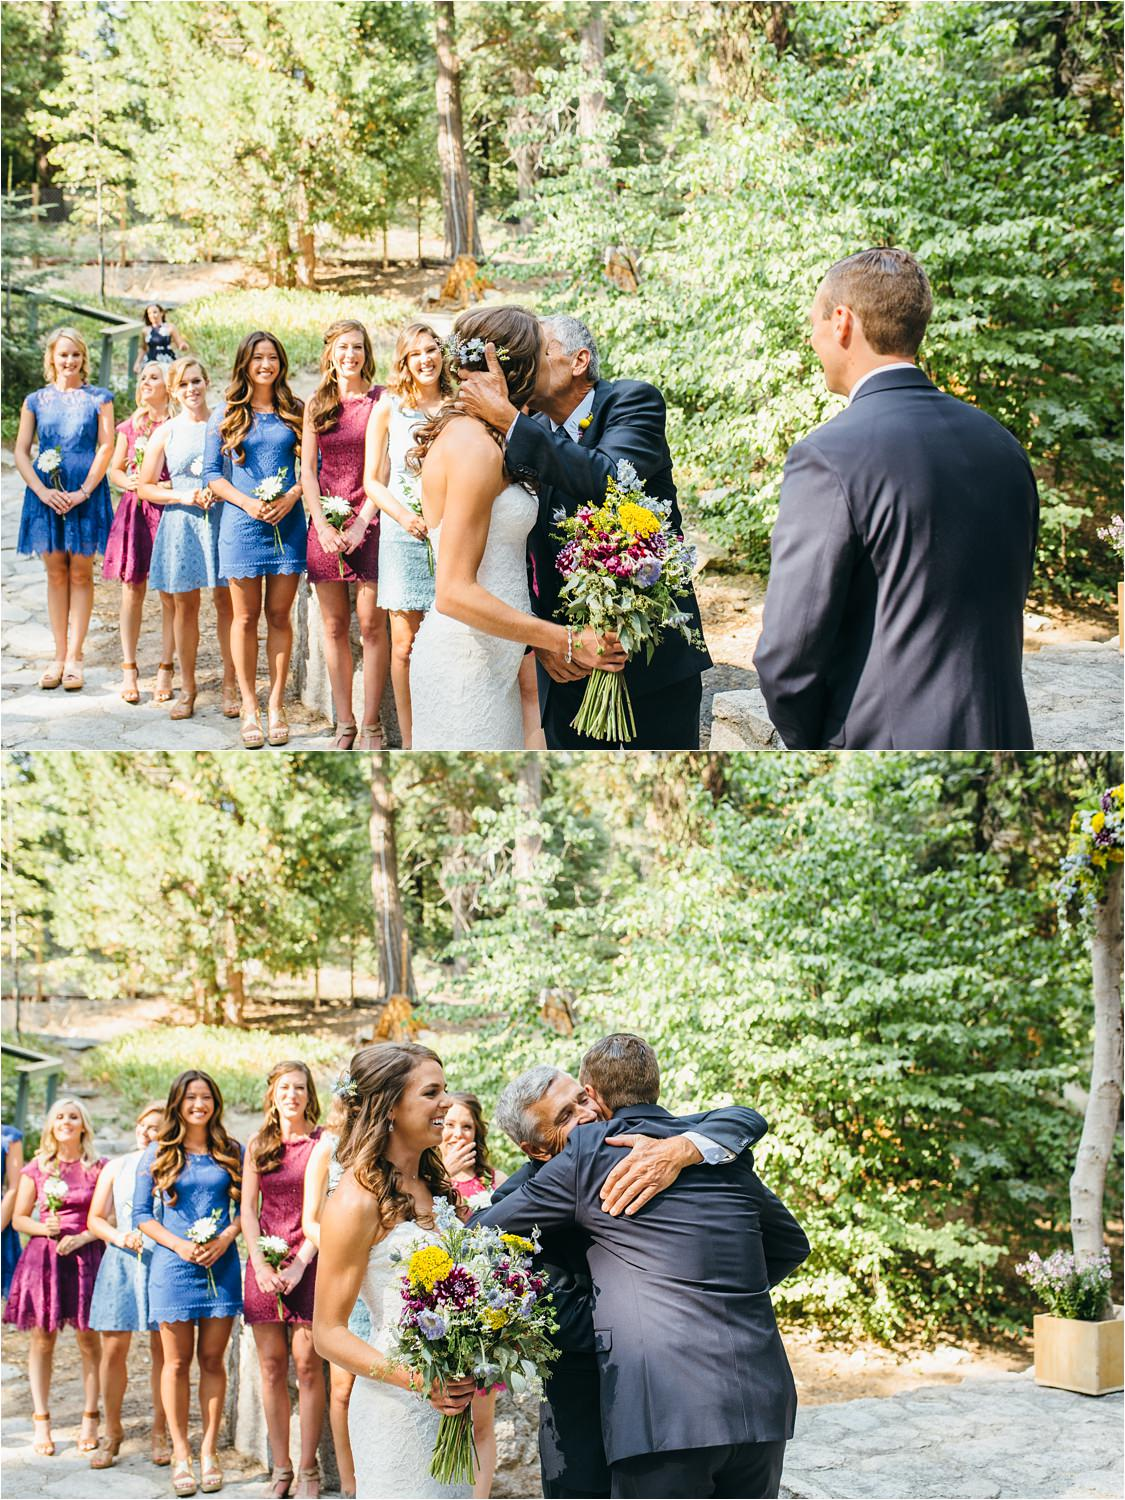 Dad giving his daughter away - Heartfelt Wedding Ceremony - Mountainside Wedding - https://brittneyhannonphotography.com